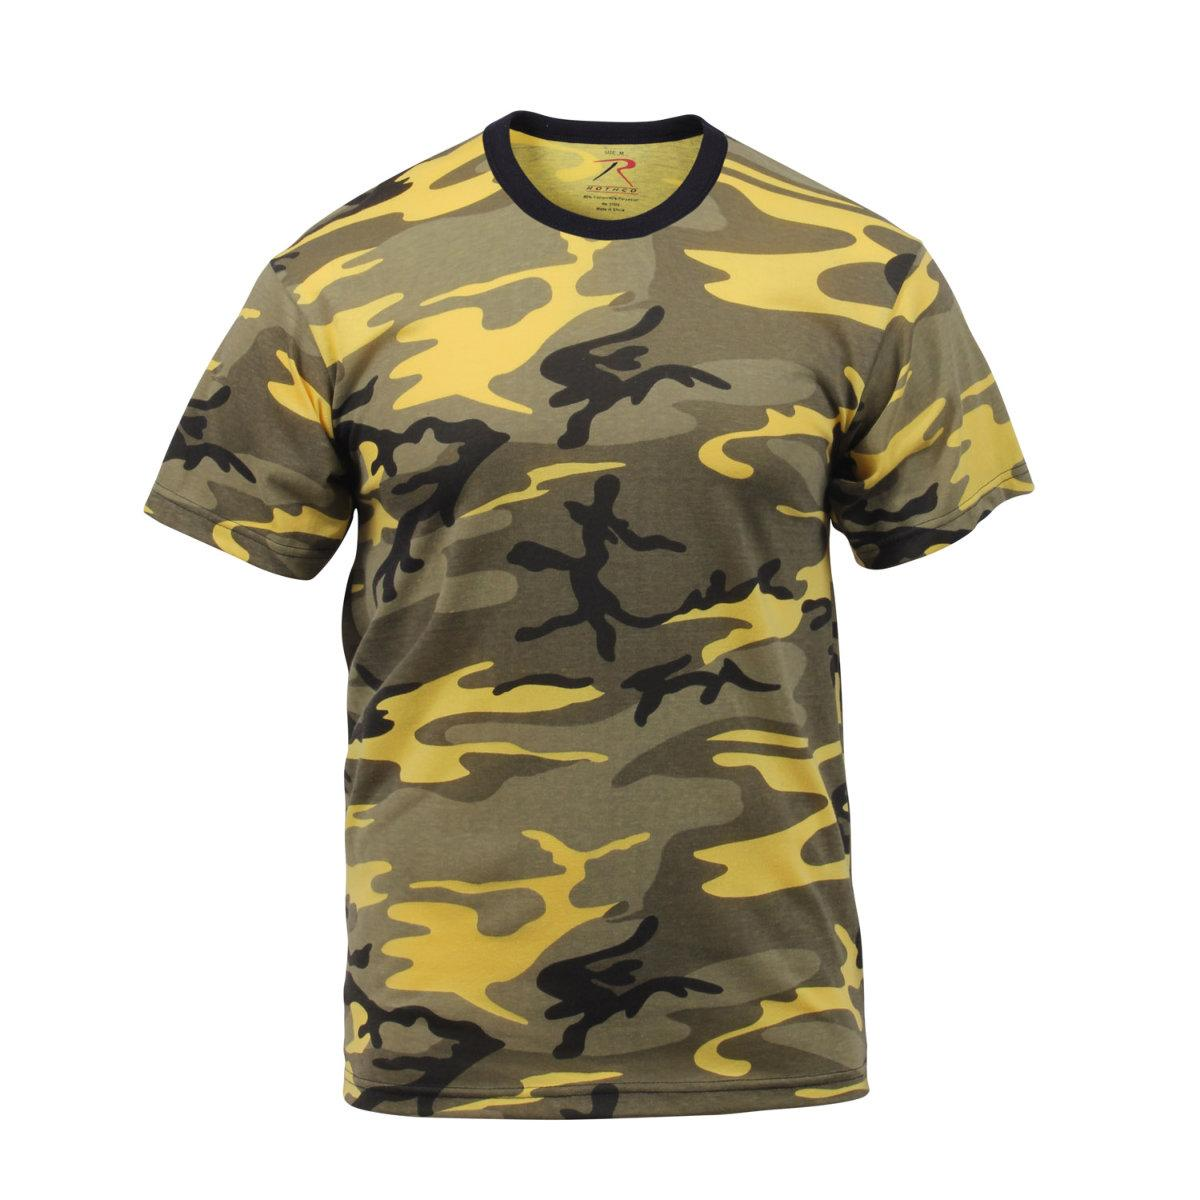 Stinger Yellow Camouflage T-Shirt by Rothco